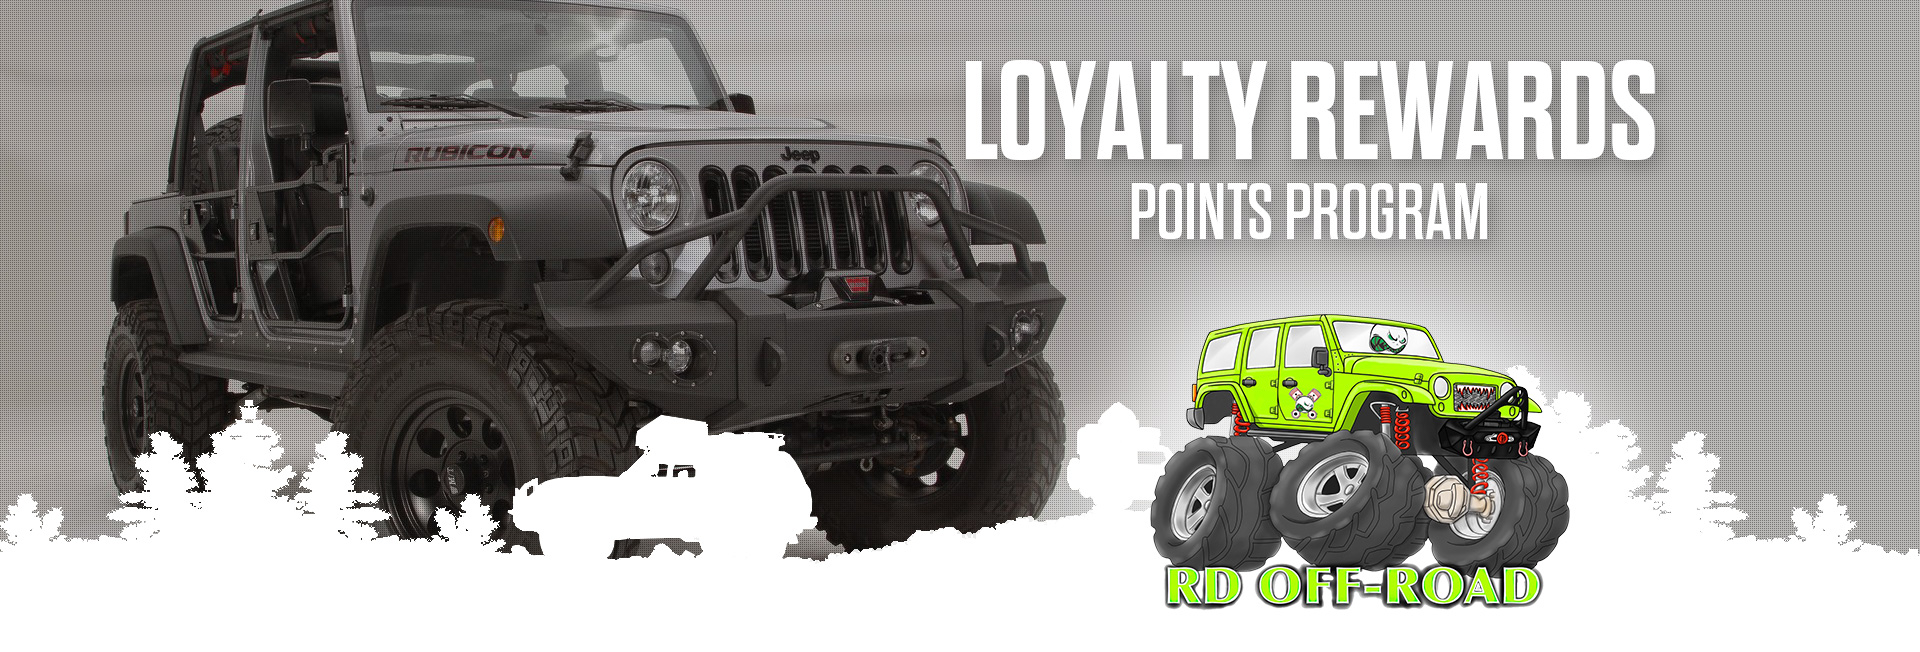 rd-off-road-rewards-program.jpg